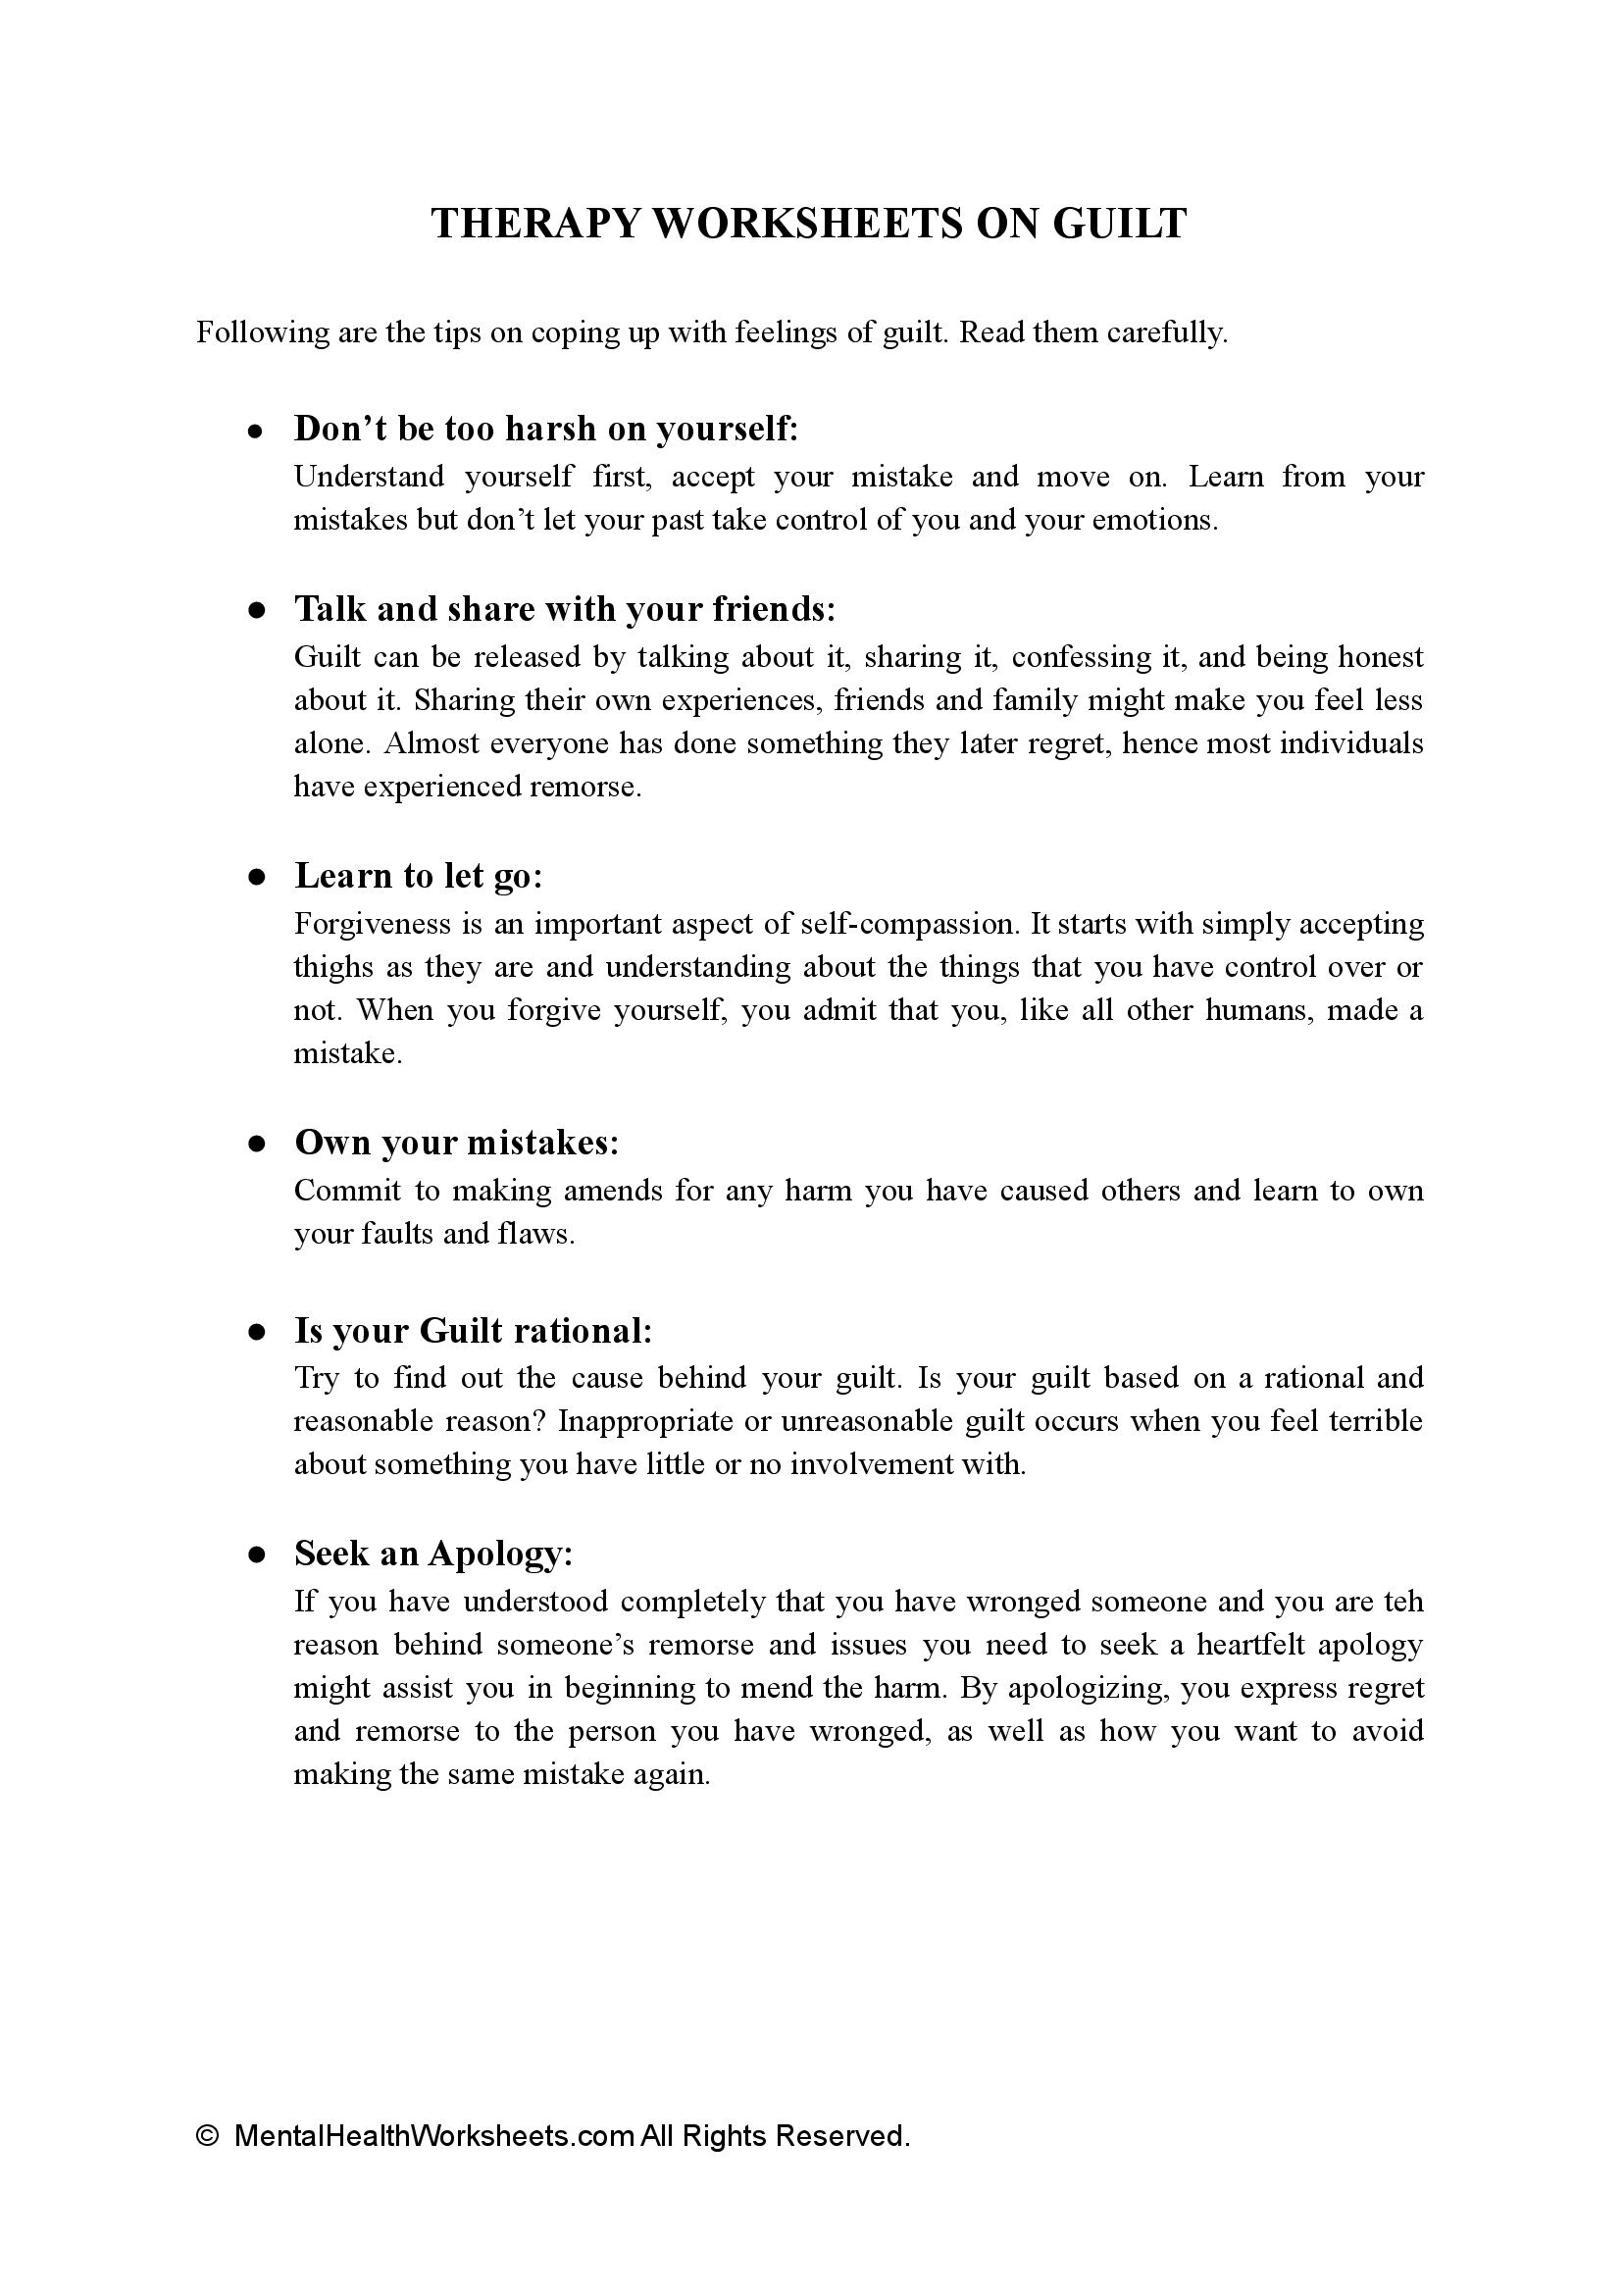 THERAPY WORKSHEETS ON GUILT